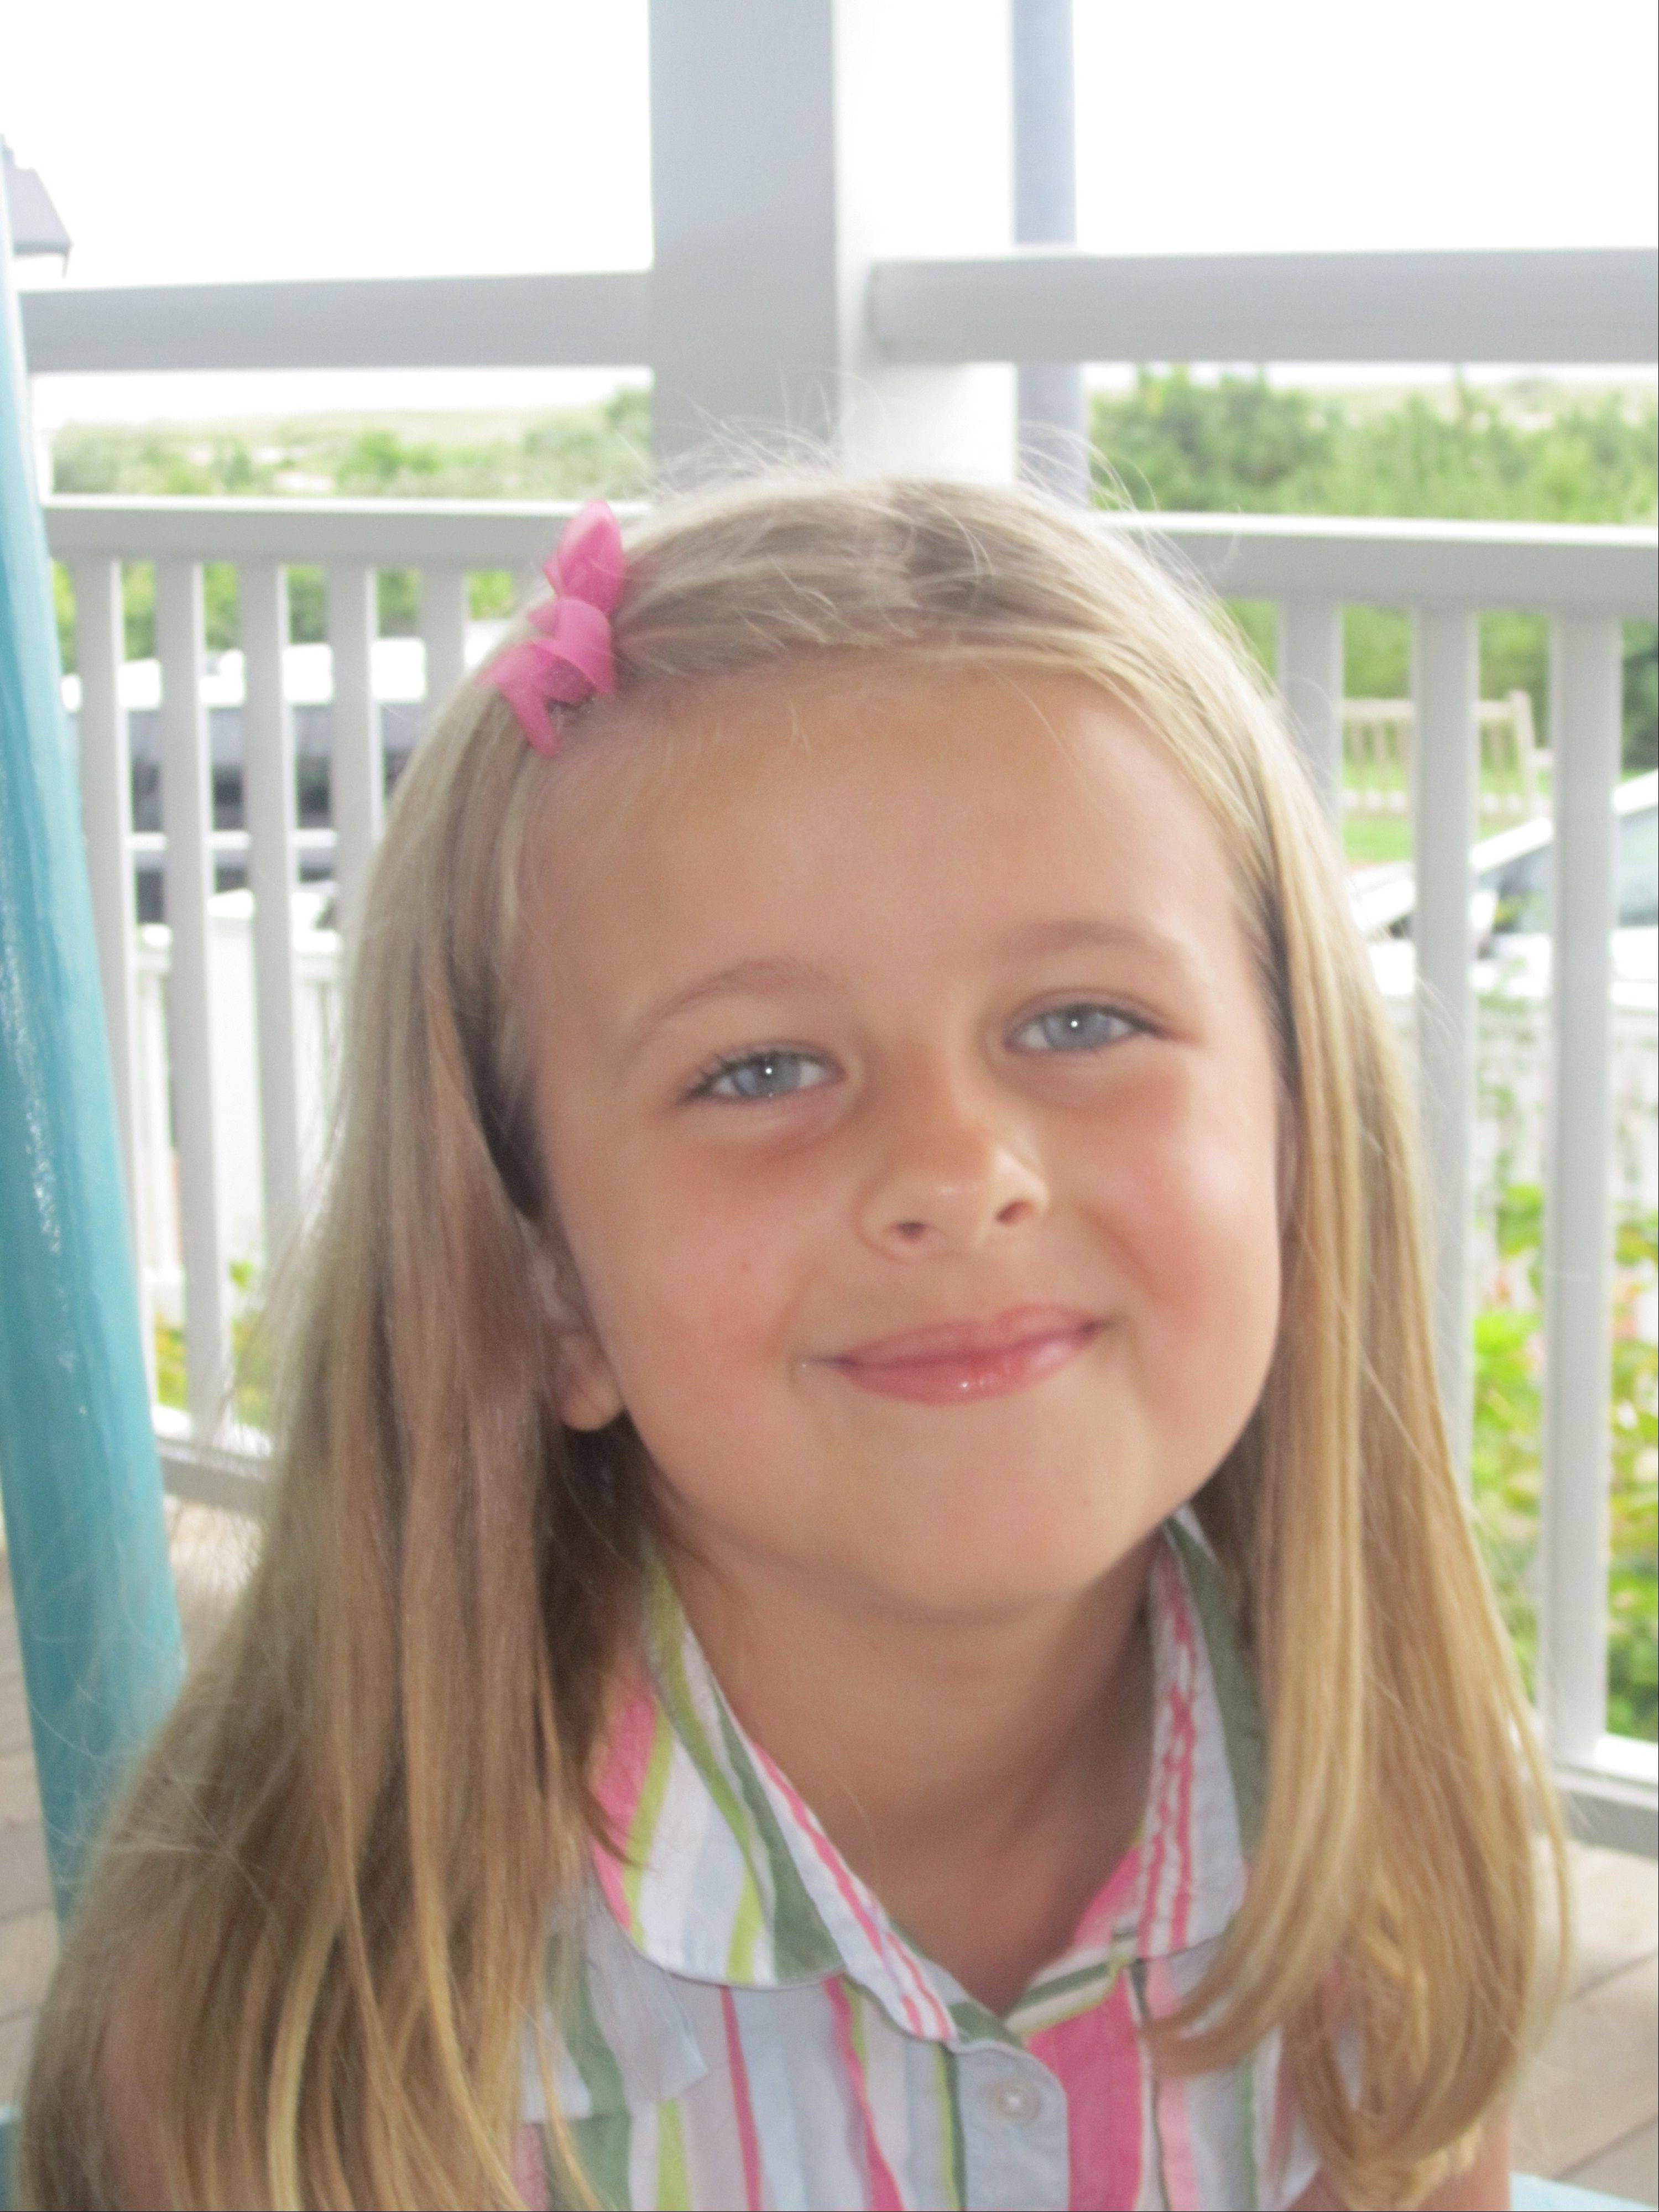 This image provided by the family shows Grace McDonnell posing for a portrait in this family photo taken Aug. 18, 2012. Grace McDonnell was killed Friday, Dec. 14, 2012, when a gunman opened fire at Sandy Hook elementary school in Newtown, Conn., killing 26 children and adults at the school.